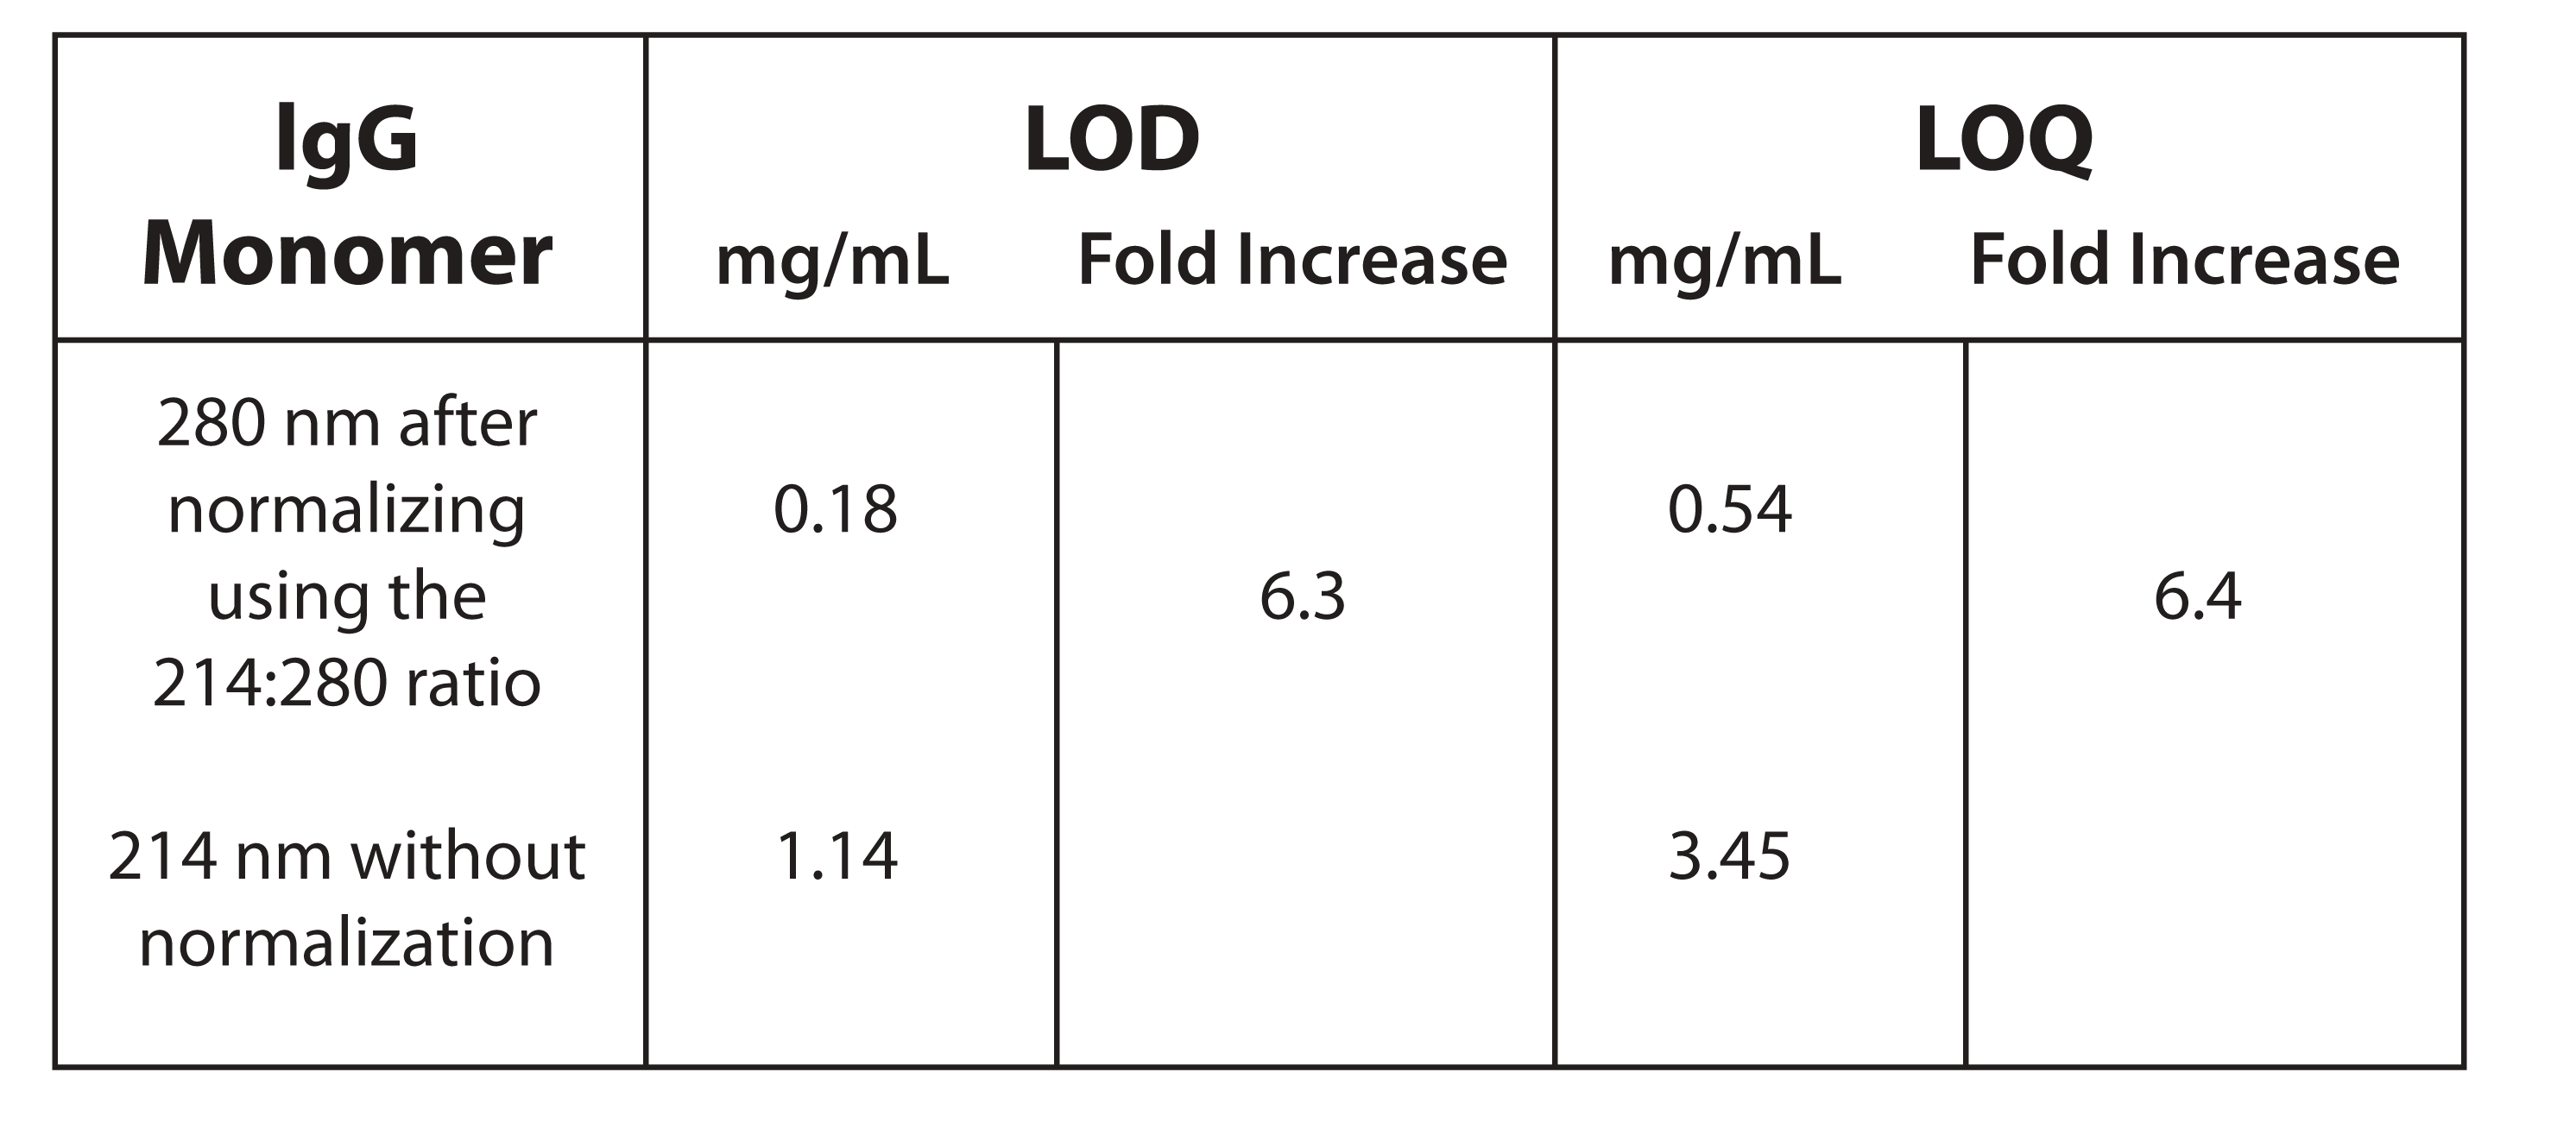 Table 4. Results for Evaluation of Sensitivity for IgG by detection of the Monomer Peak at 280 nm versus the same peak when normalization was not performed.